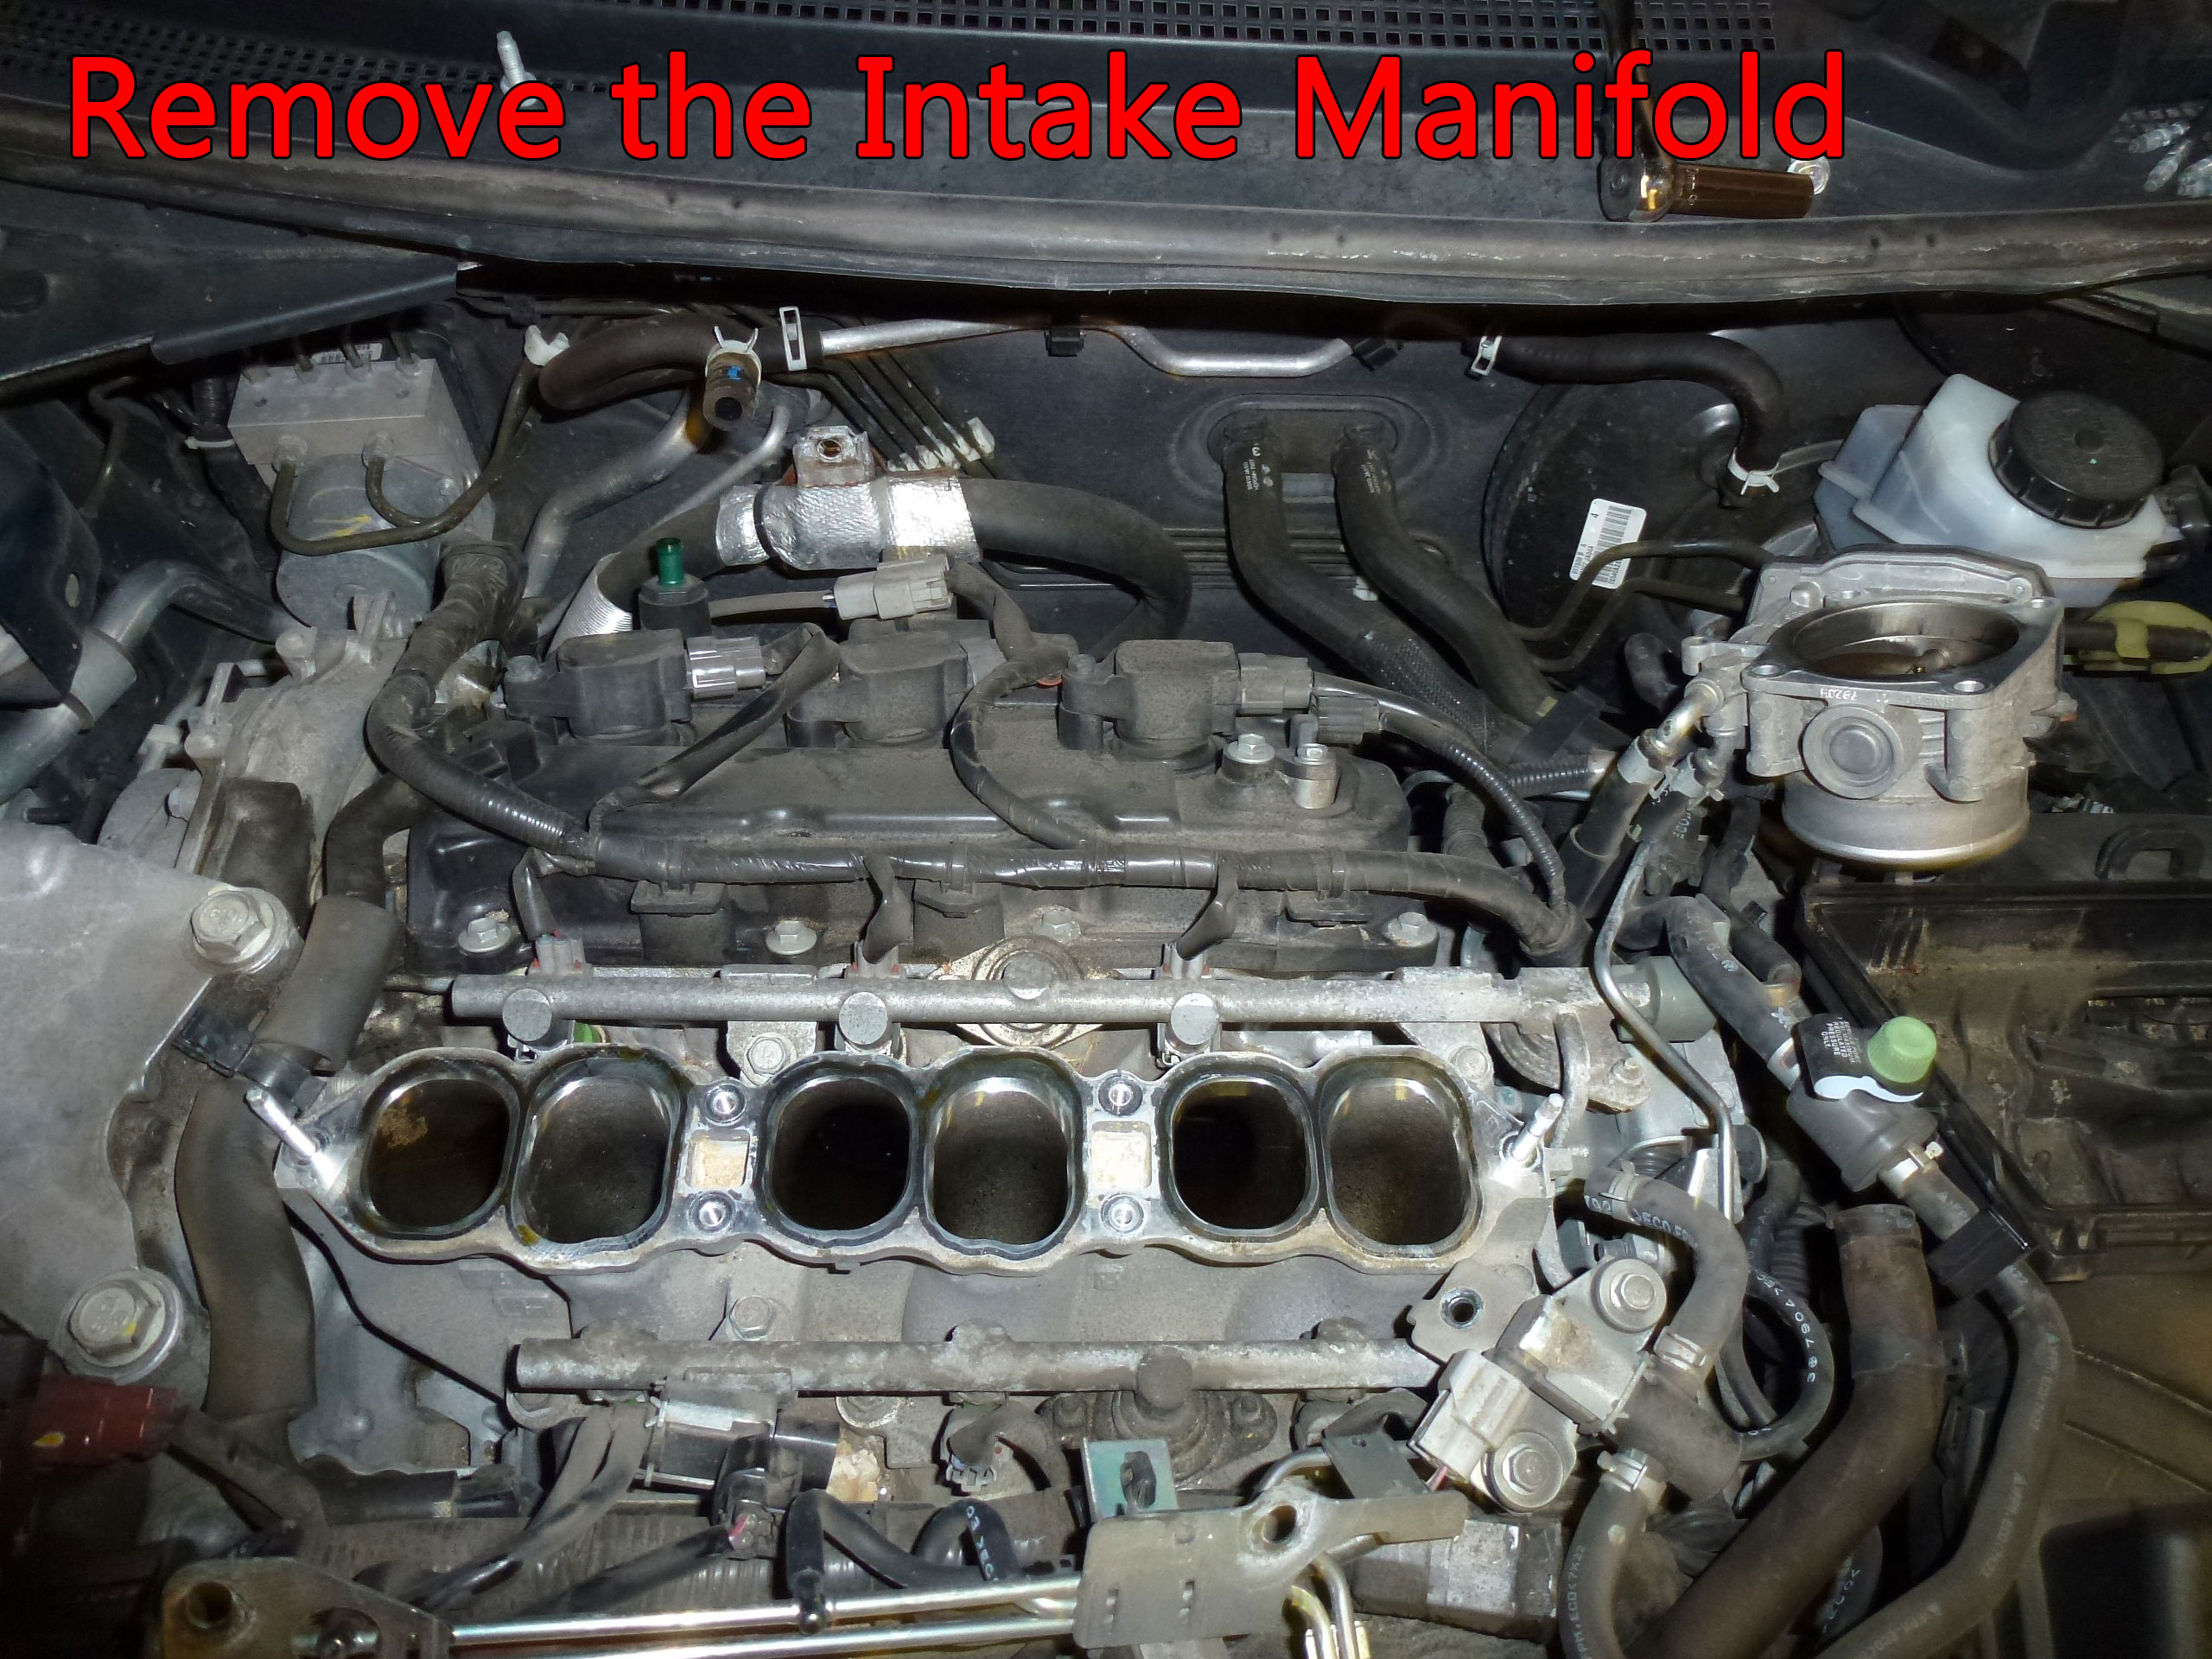 If you haven't missed anything, the upper intake manifold can be lifted out. Remove slowly and check for anything that may still be attached.